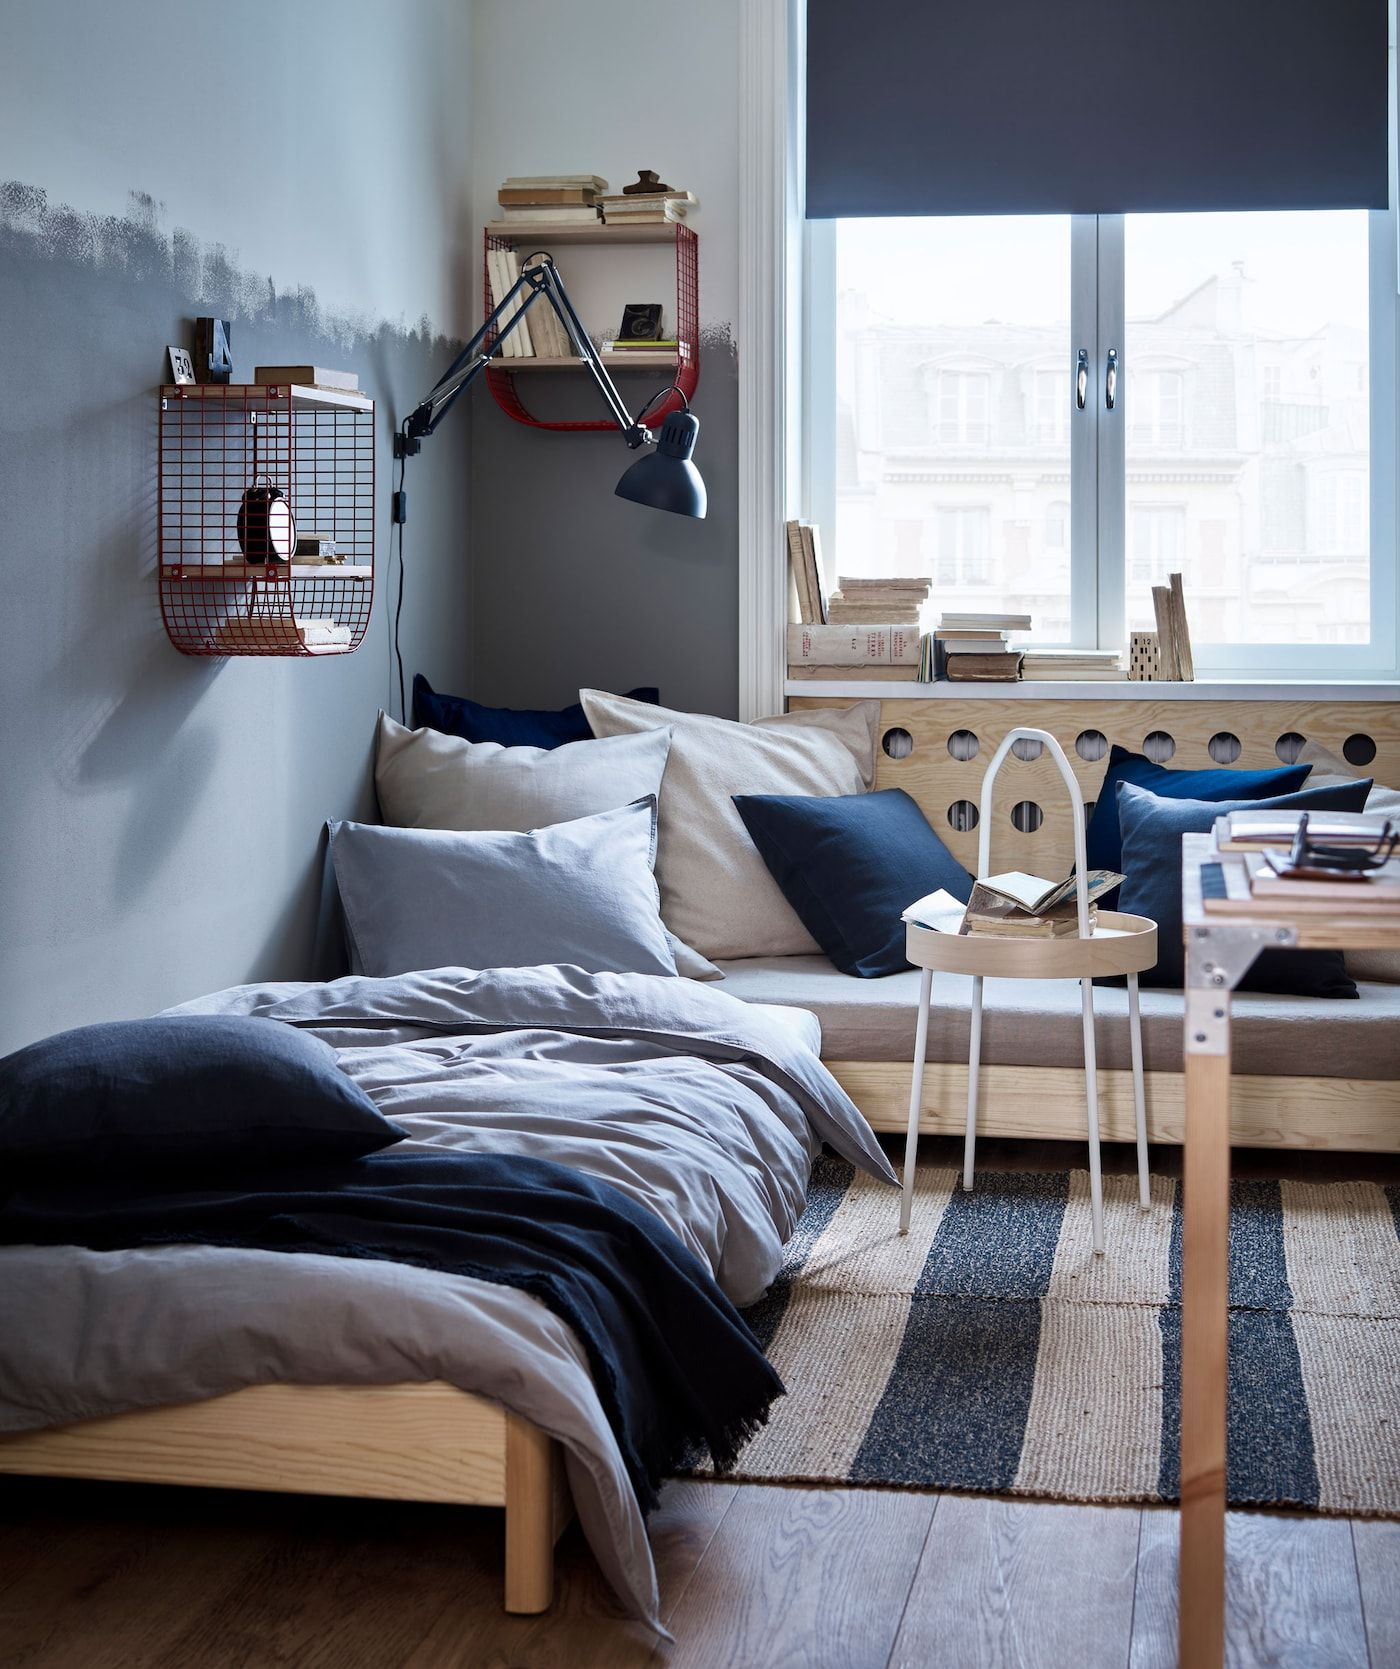 A Shared Home That Turns Friends Into Family Ikea Chambre Ado Mobilier Modulaire